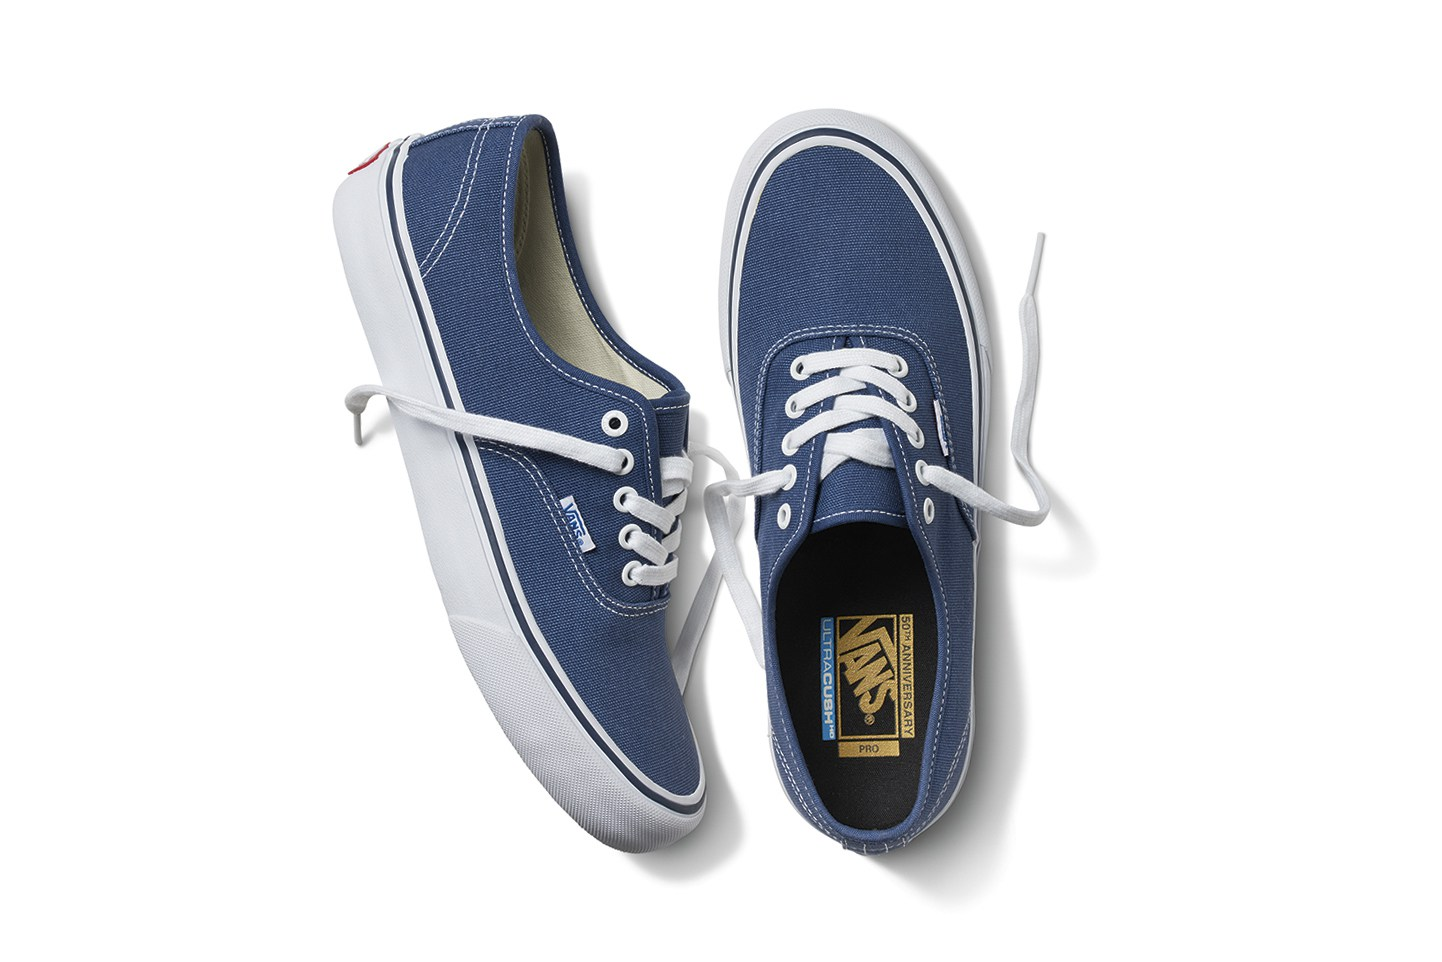 vans-pro-classics-anniversary-collection-launches-5-iconic-models-2